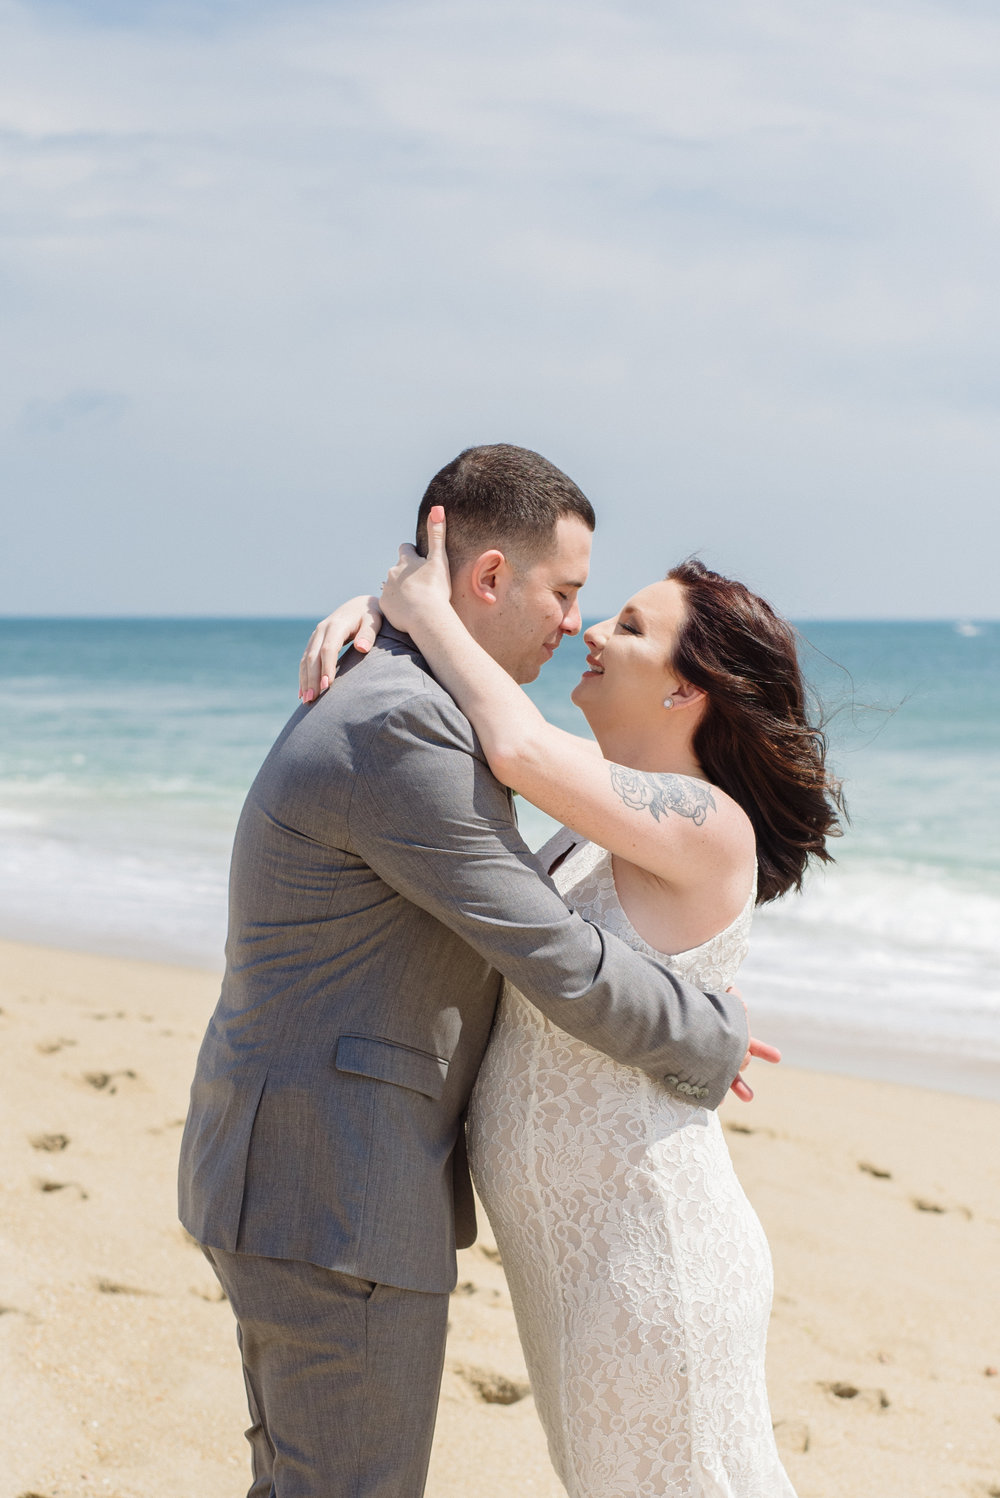 Caitlyn+Anthony- Belmar Beach Elopement- New Jersey Weddings- Olivia Christina Photo-101.JPG